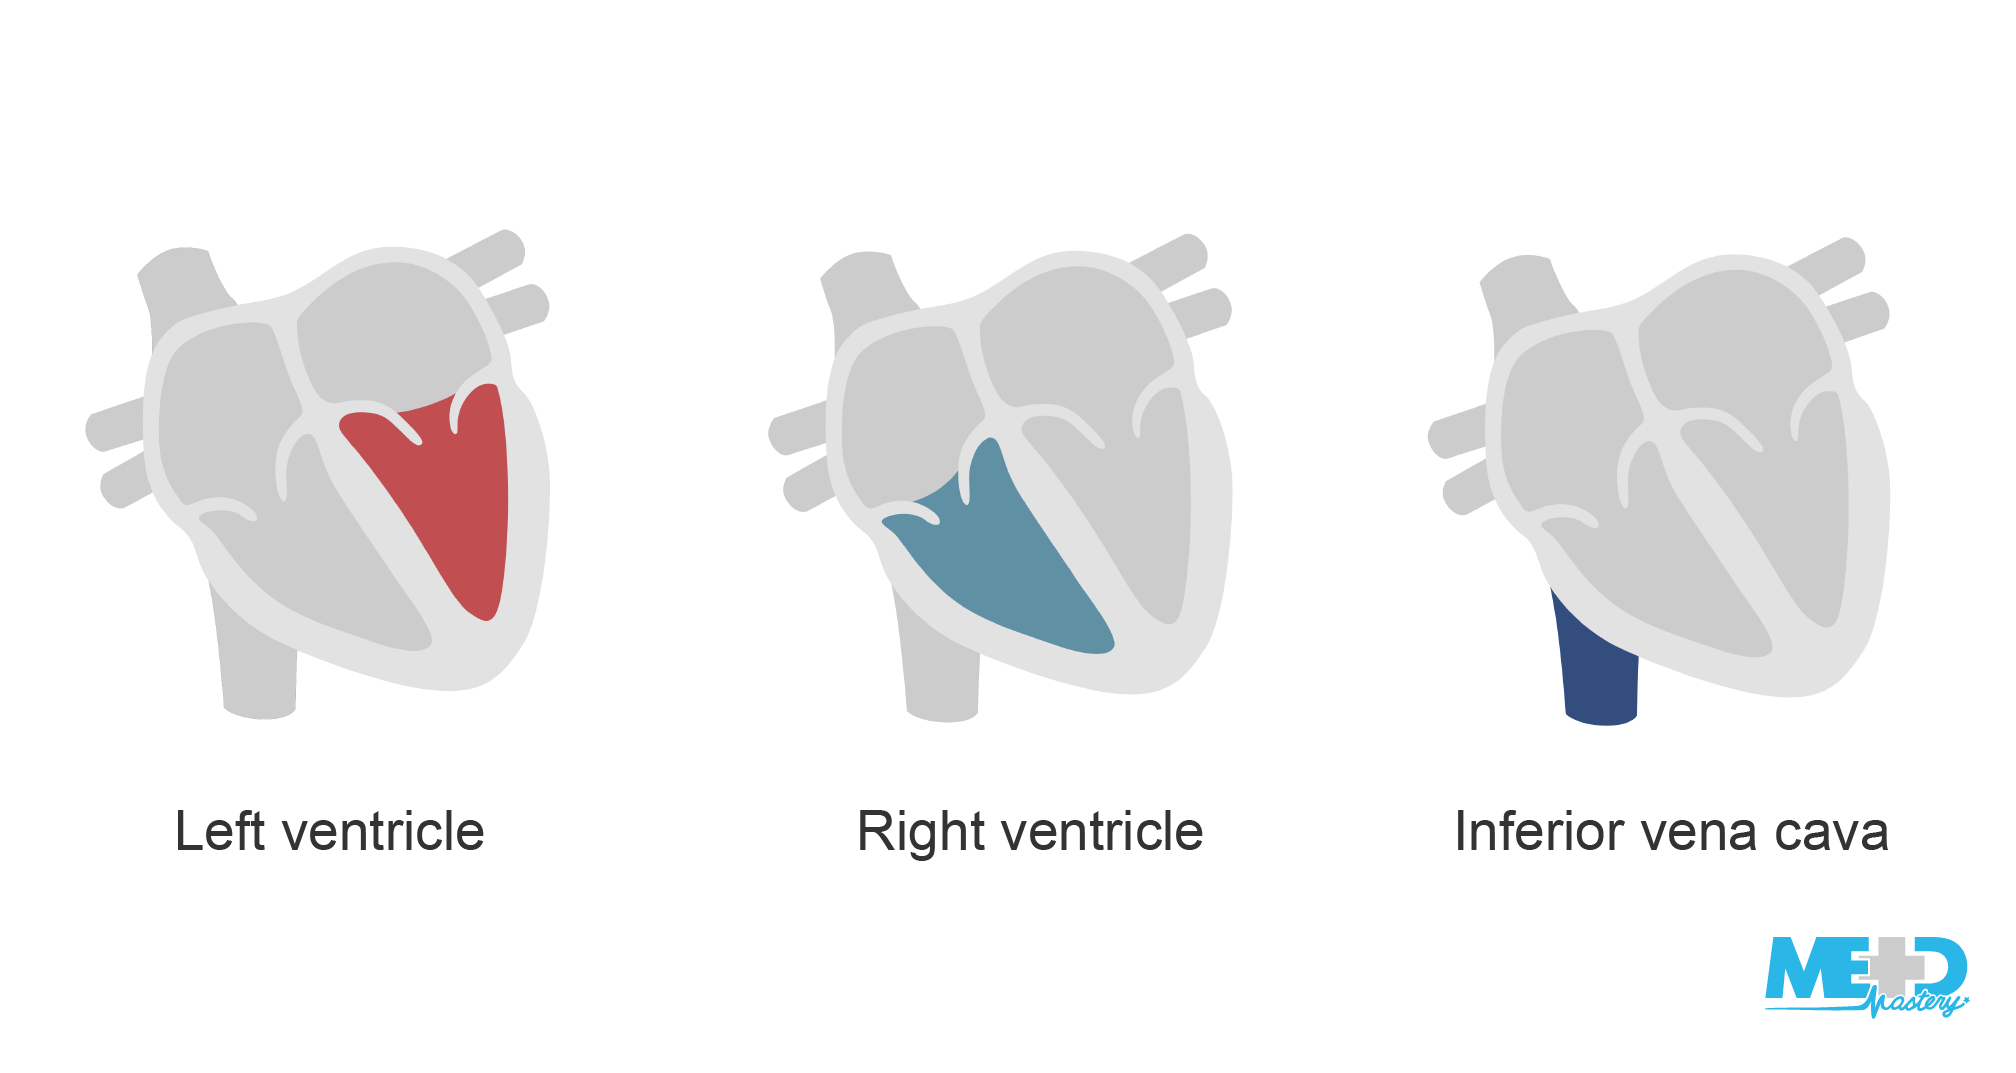 Multi-component illustration of heart with left ventricle, right ventricle, and inferior vena cava highlighted.